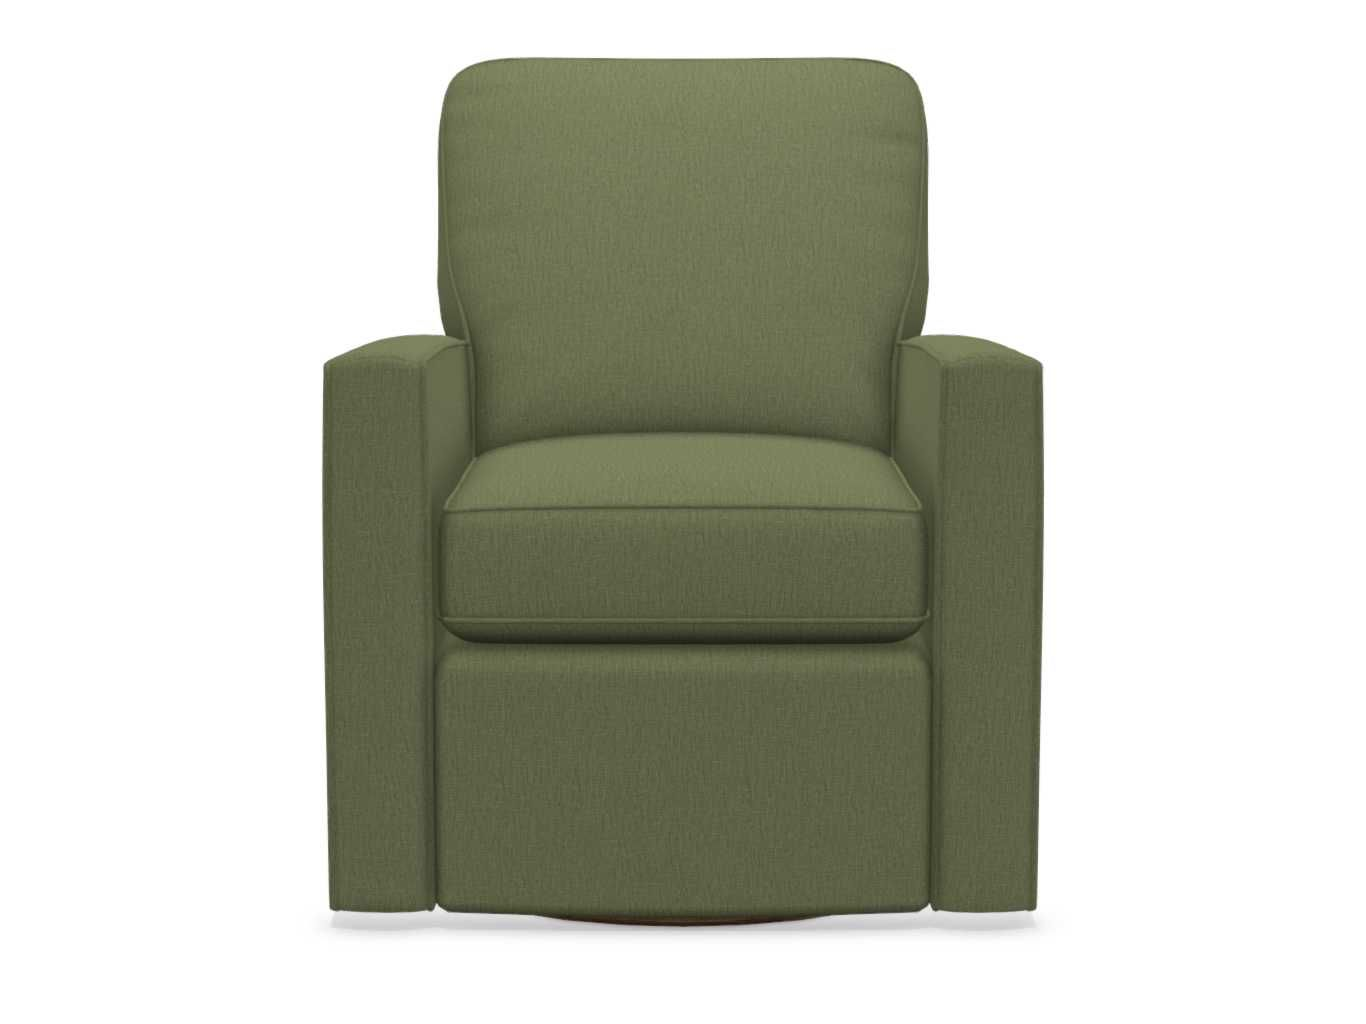 Midtown Swivel Gliding Chair In 2020 Gliding Chair Chair Big City Living